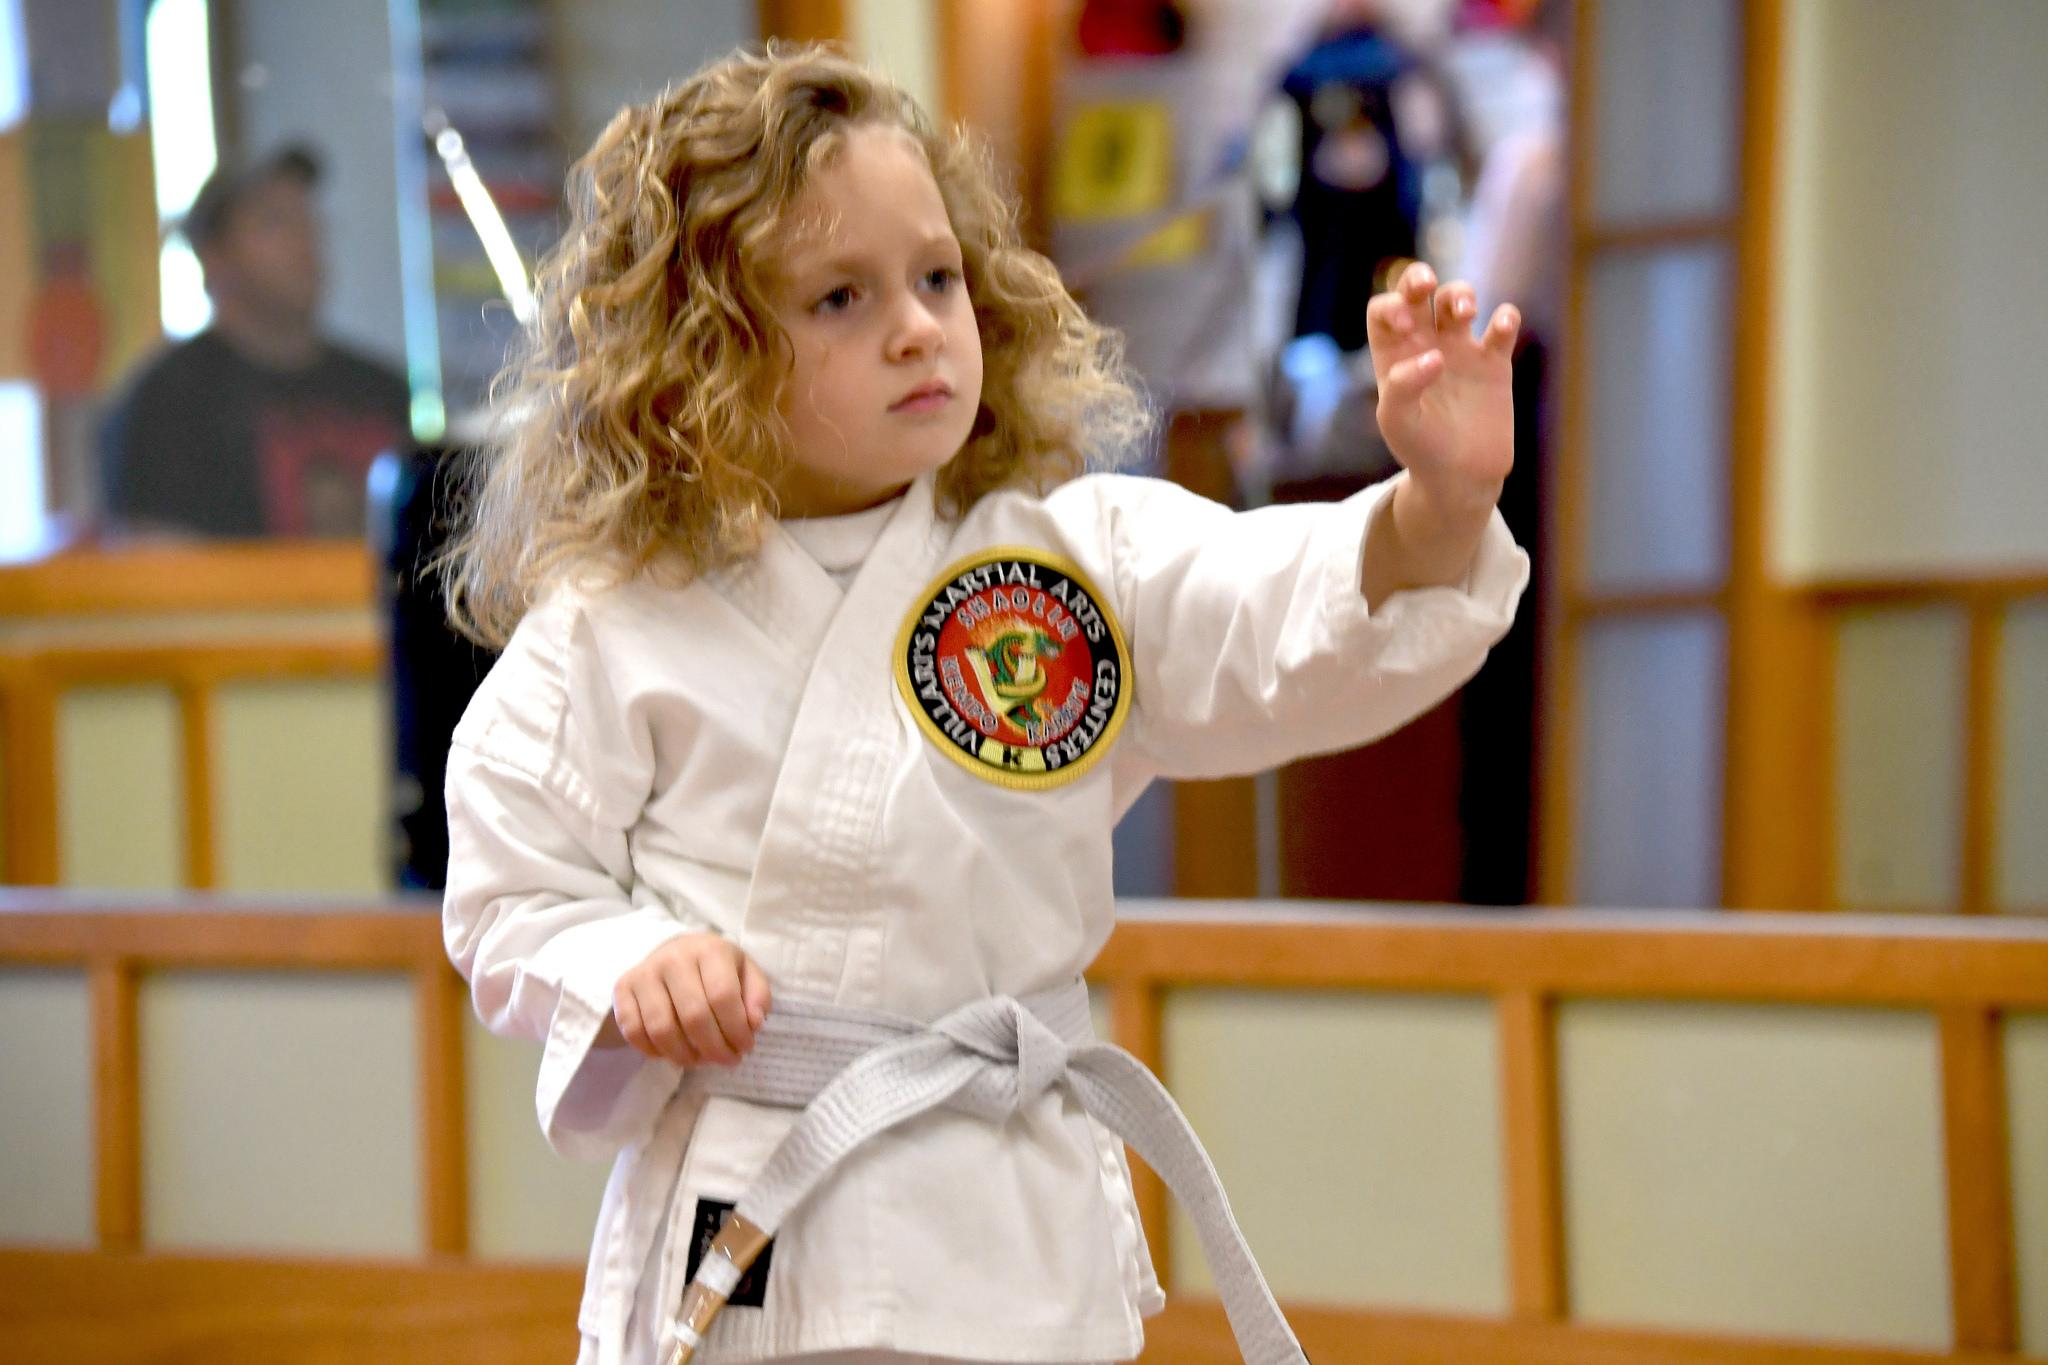 Karate, Martial Arts, Newington Karate, Newington Martial Arts